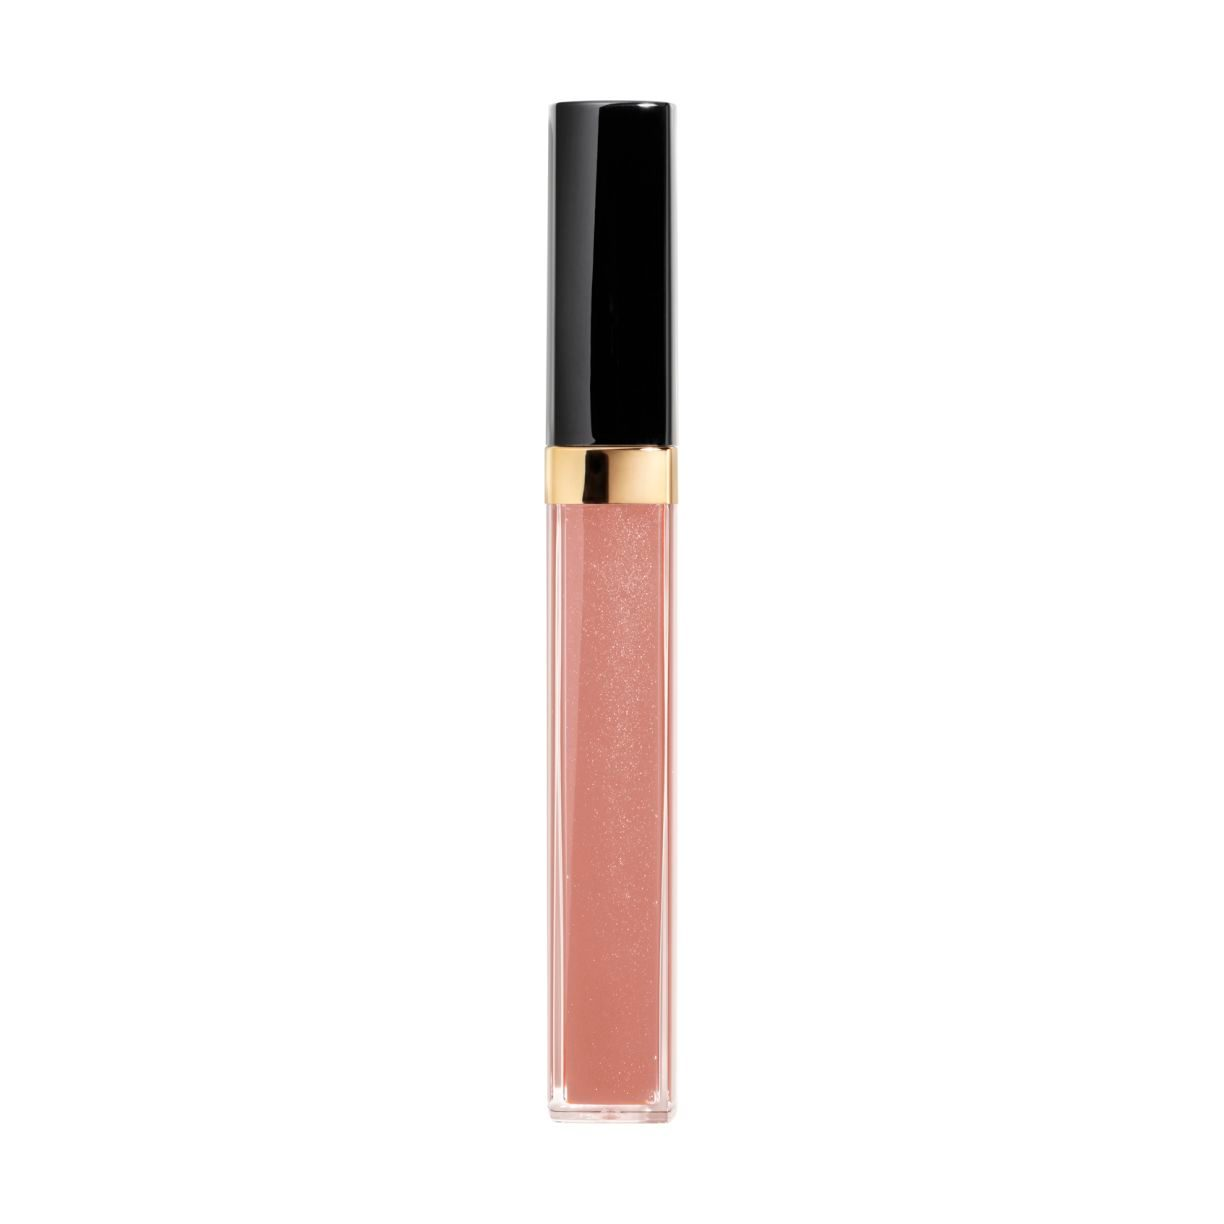 ROUGE COCO GLOSS MOISTURISING GLOSSIMER 722 - NOCE MOSCATA